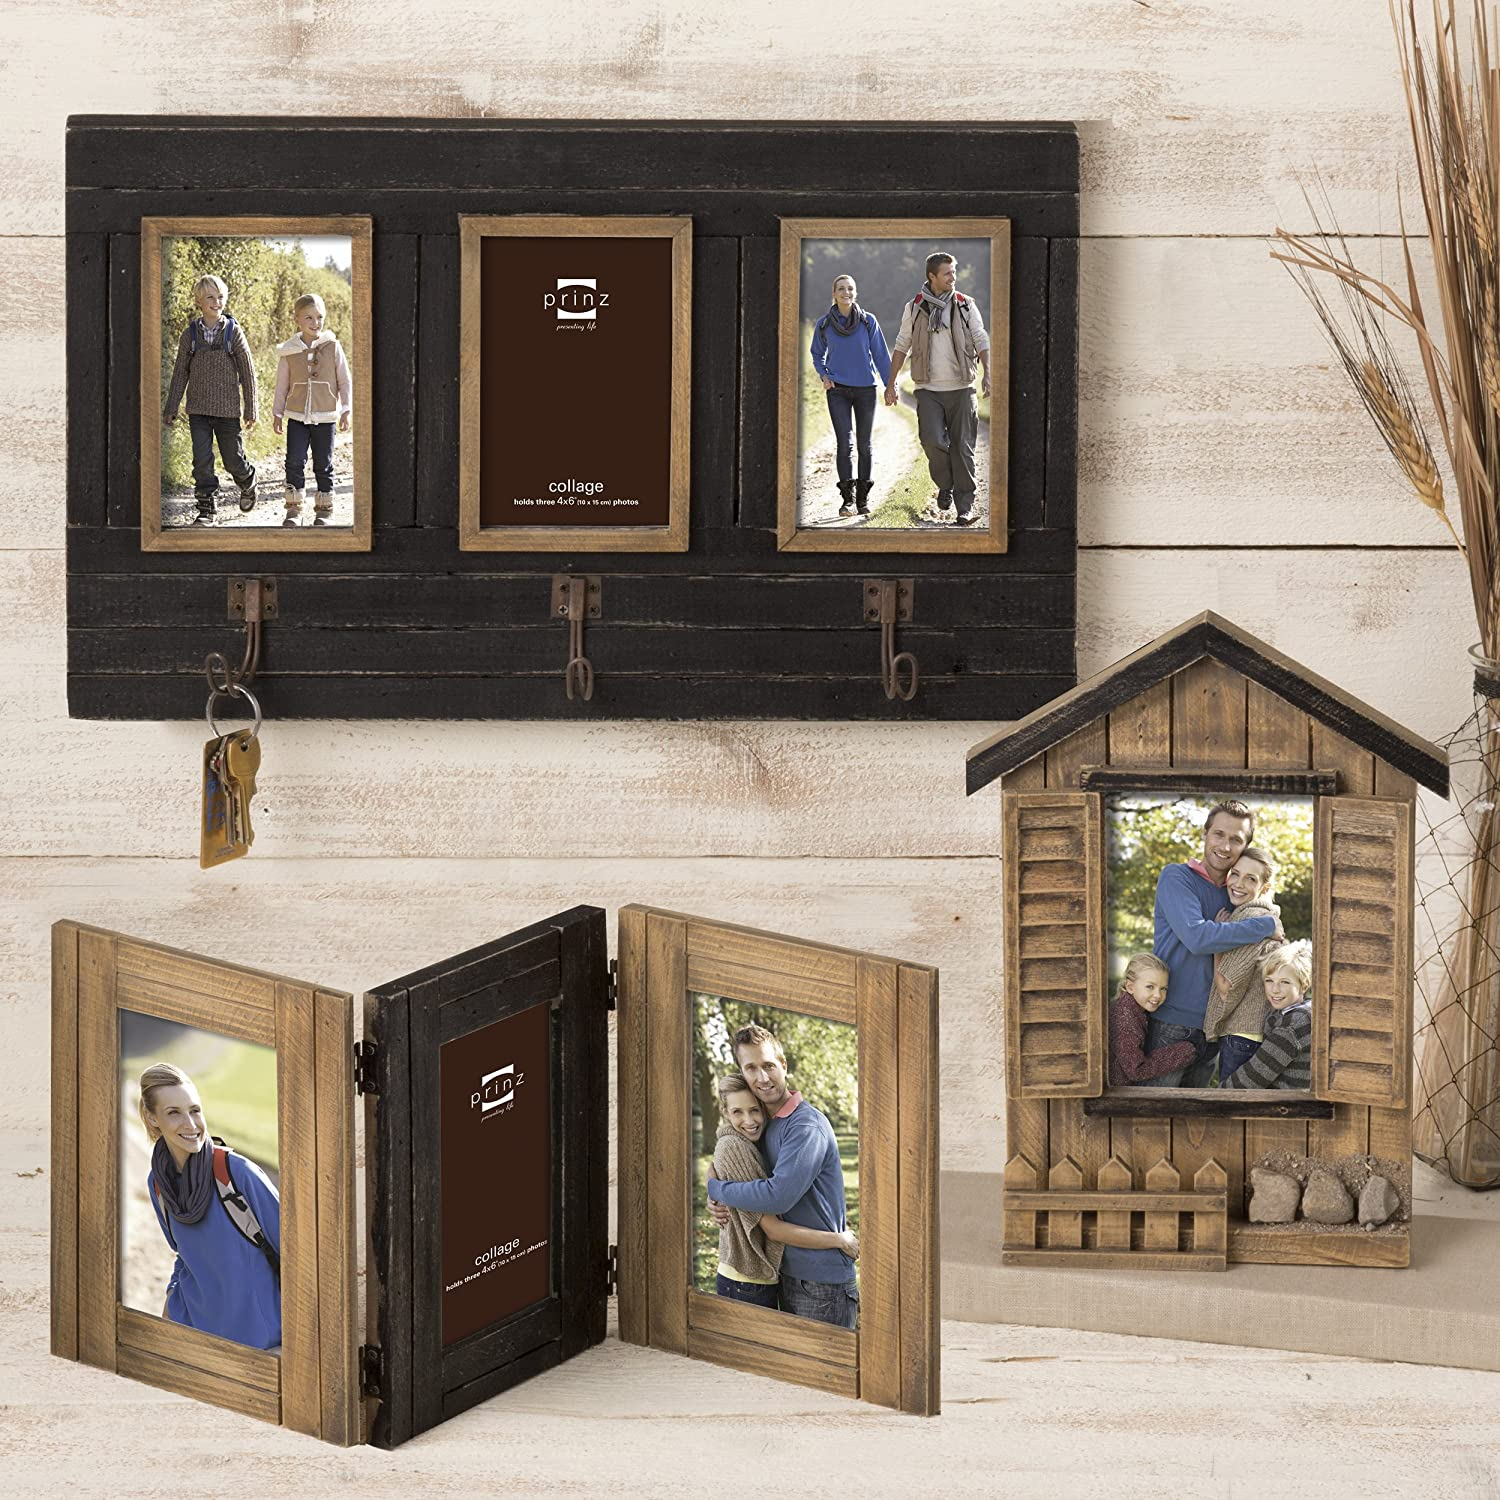 Amazon prinz 3 opening woodlands hinged solid wood frame 4 amazon prinz 3 opening woodlands hinged solid wood frame 4 by 6 inch naturalblack home kitchen jeuxipadfo Gallery